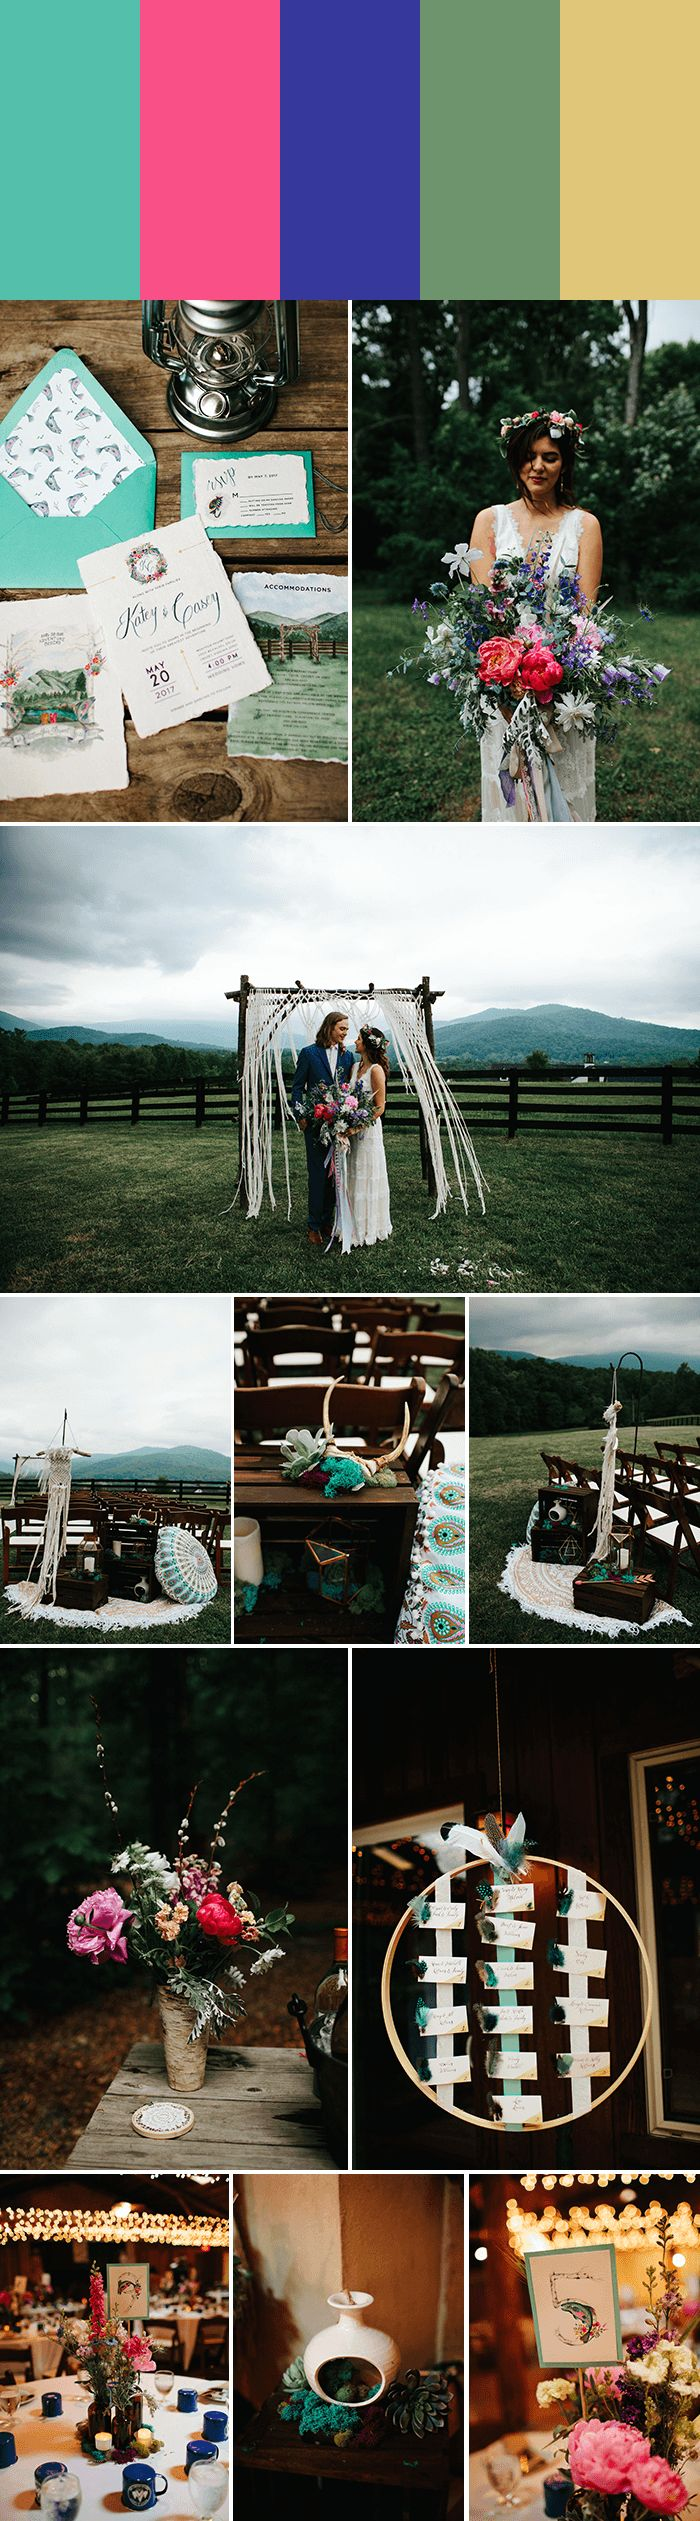 Achieve boho rustic chic with Cyan + Fuchsia + Lapis +Sage Green + Baby Yellow   Images by Leslie Swan Photography